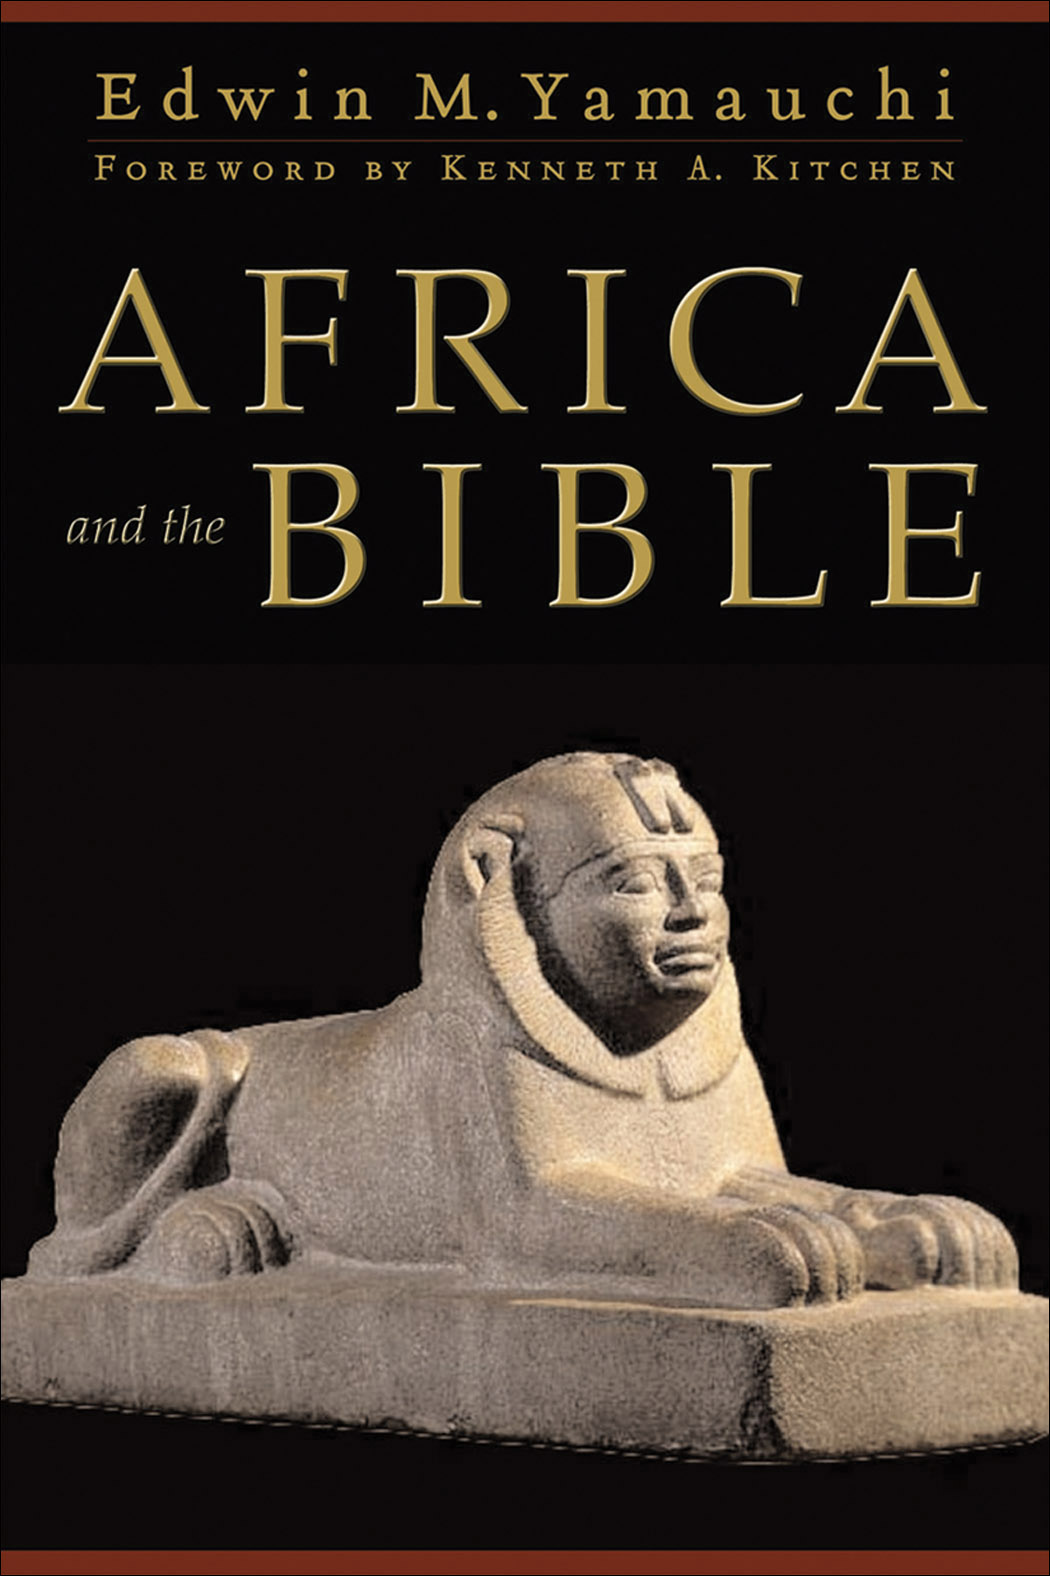 africa and the bible baker publishing group